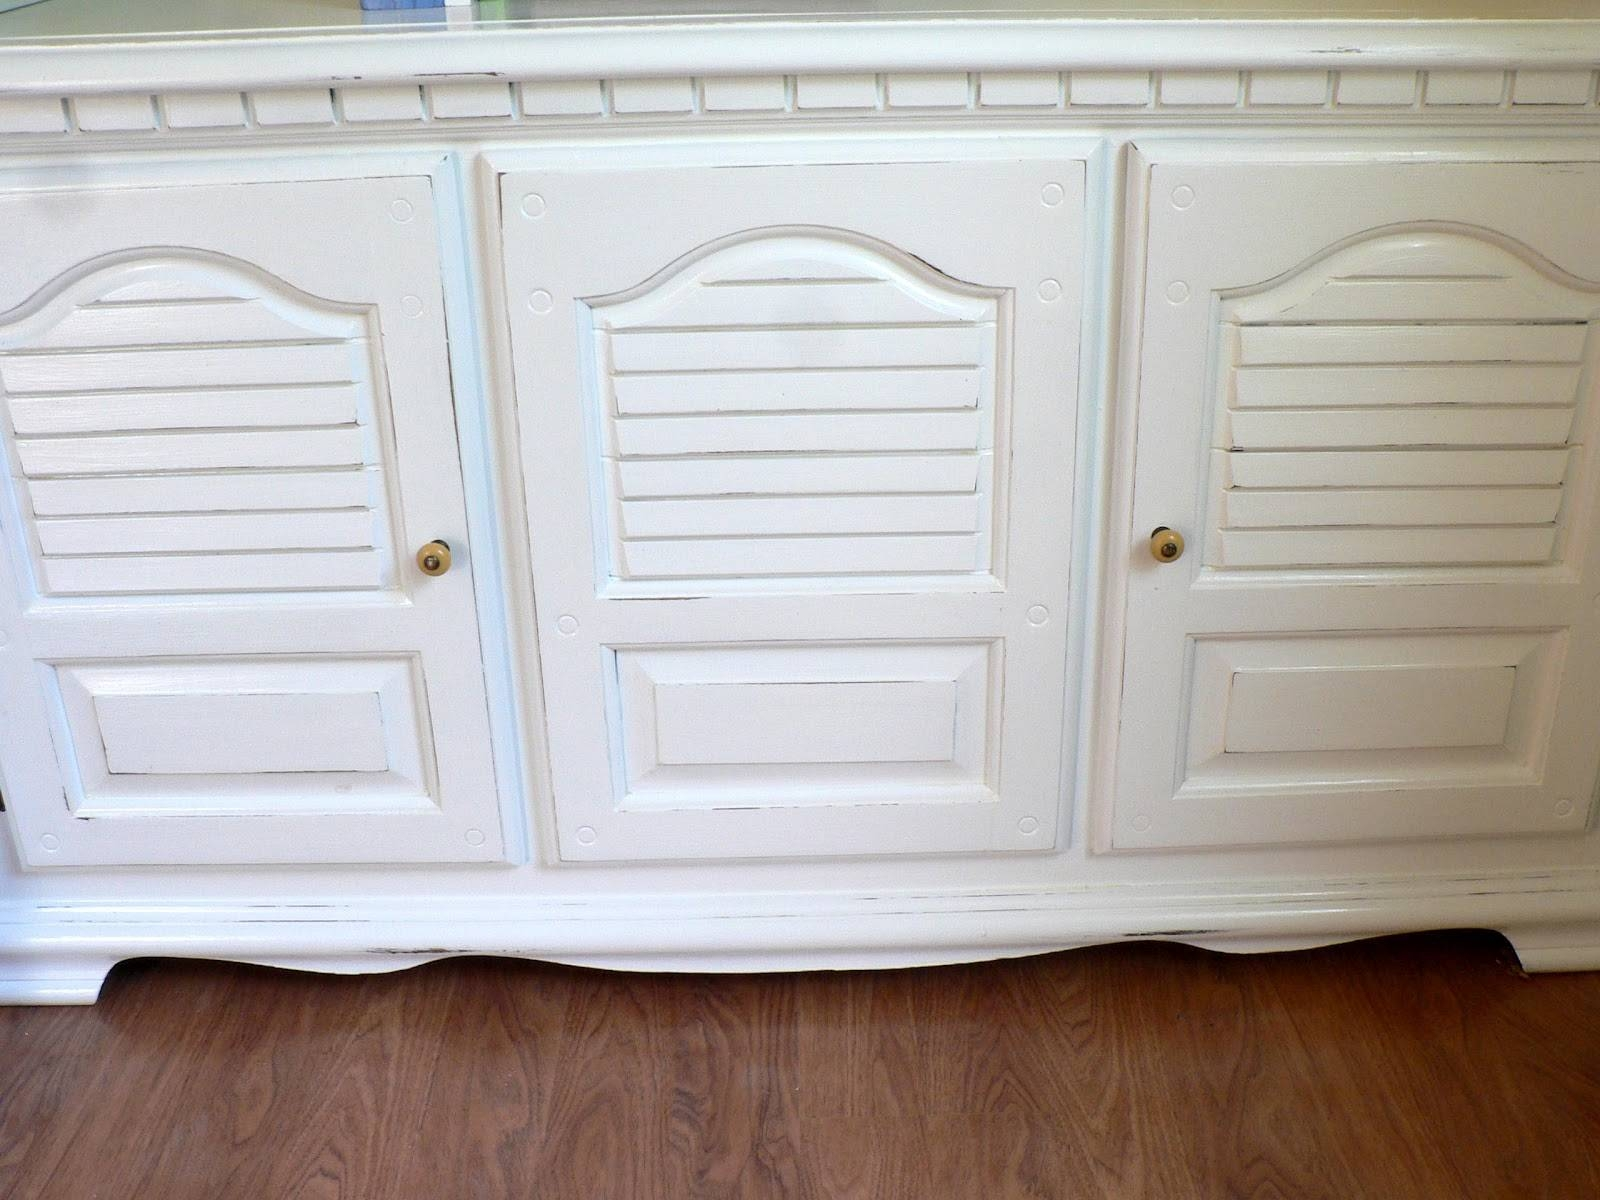 How To: Paint Furniture - Bless This Mess with White Distressed Finish Sideboards (Image 26 of 30)